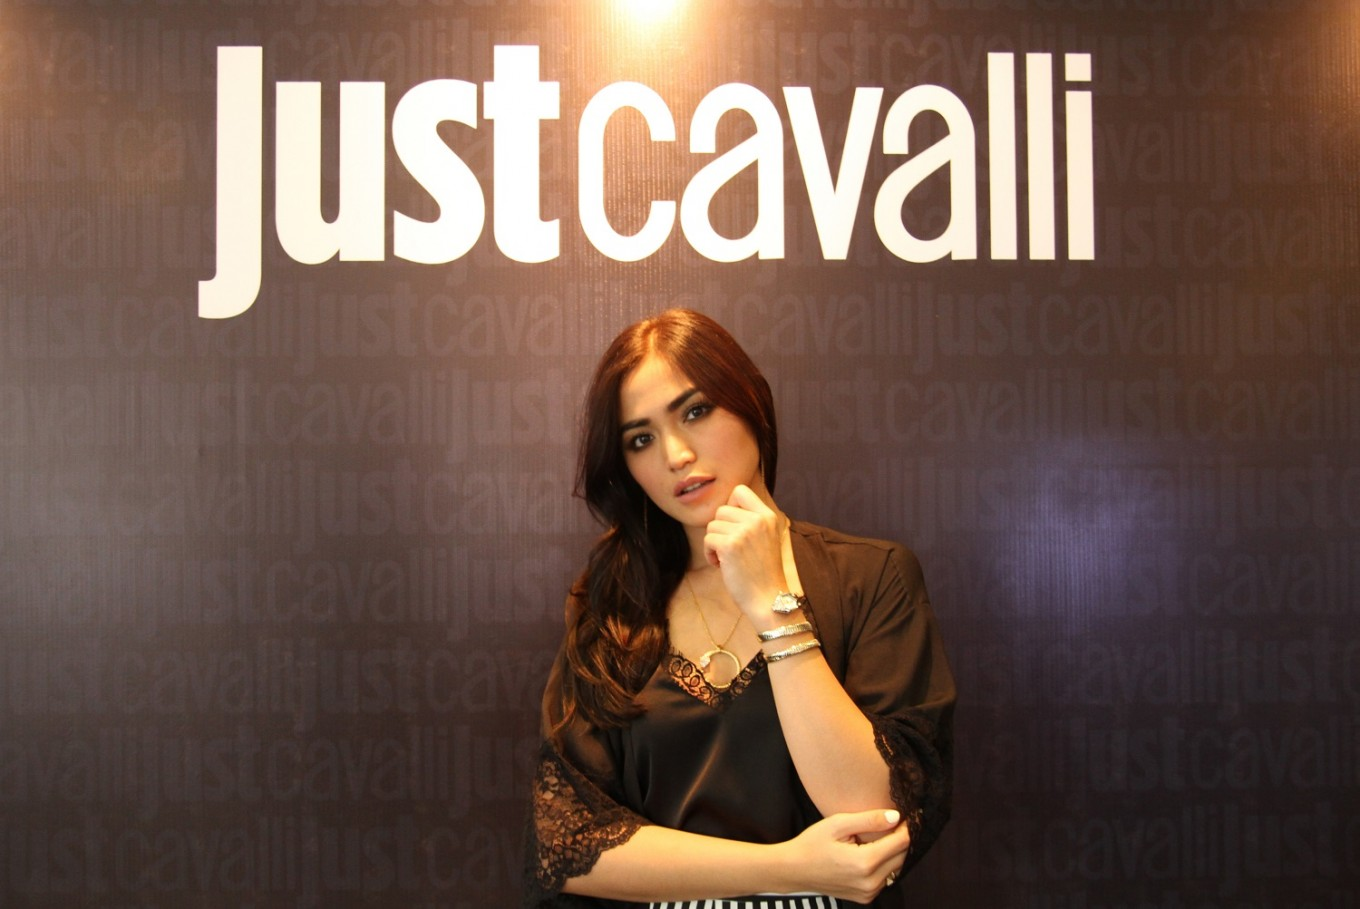 Just Cavalli watches target young fashion enthusiasts ...